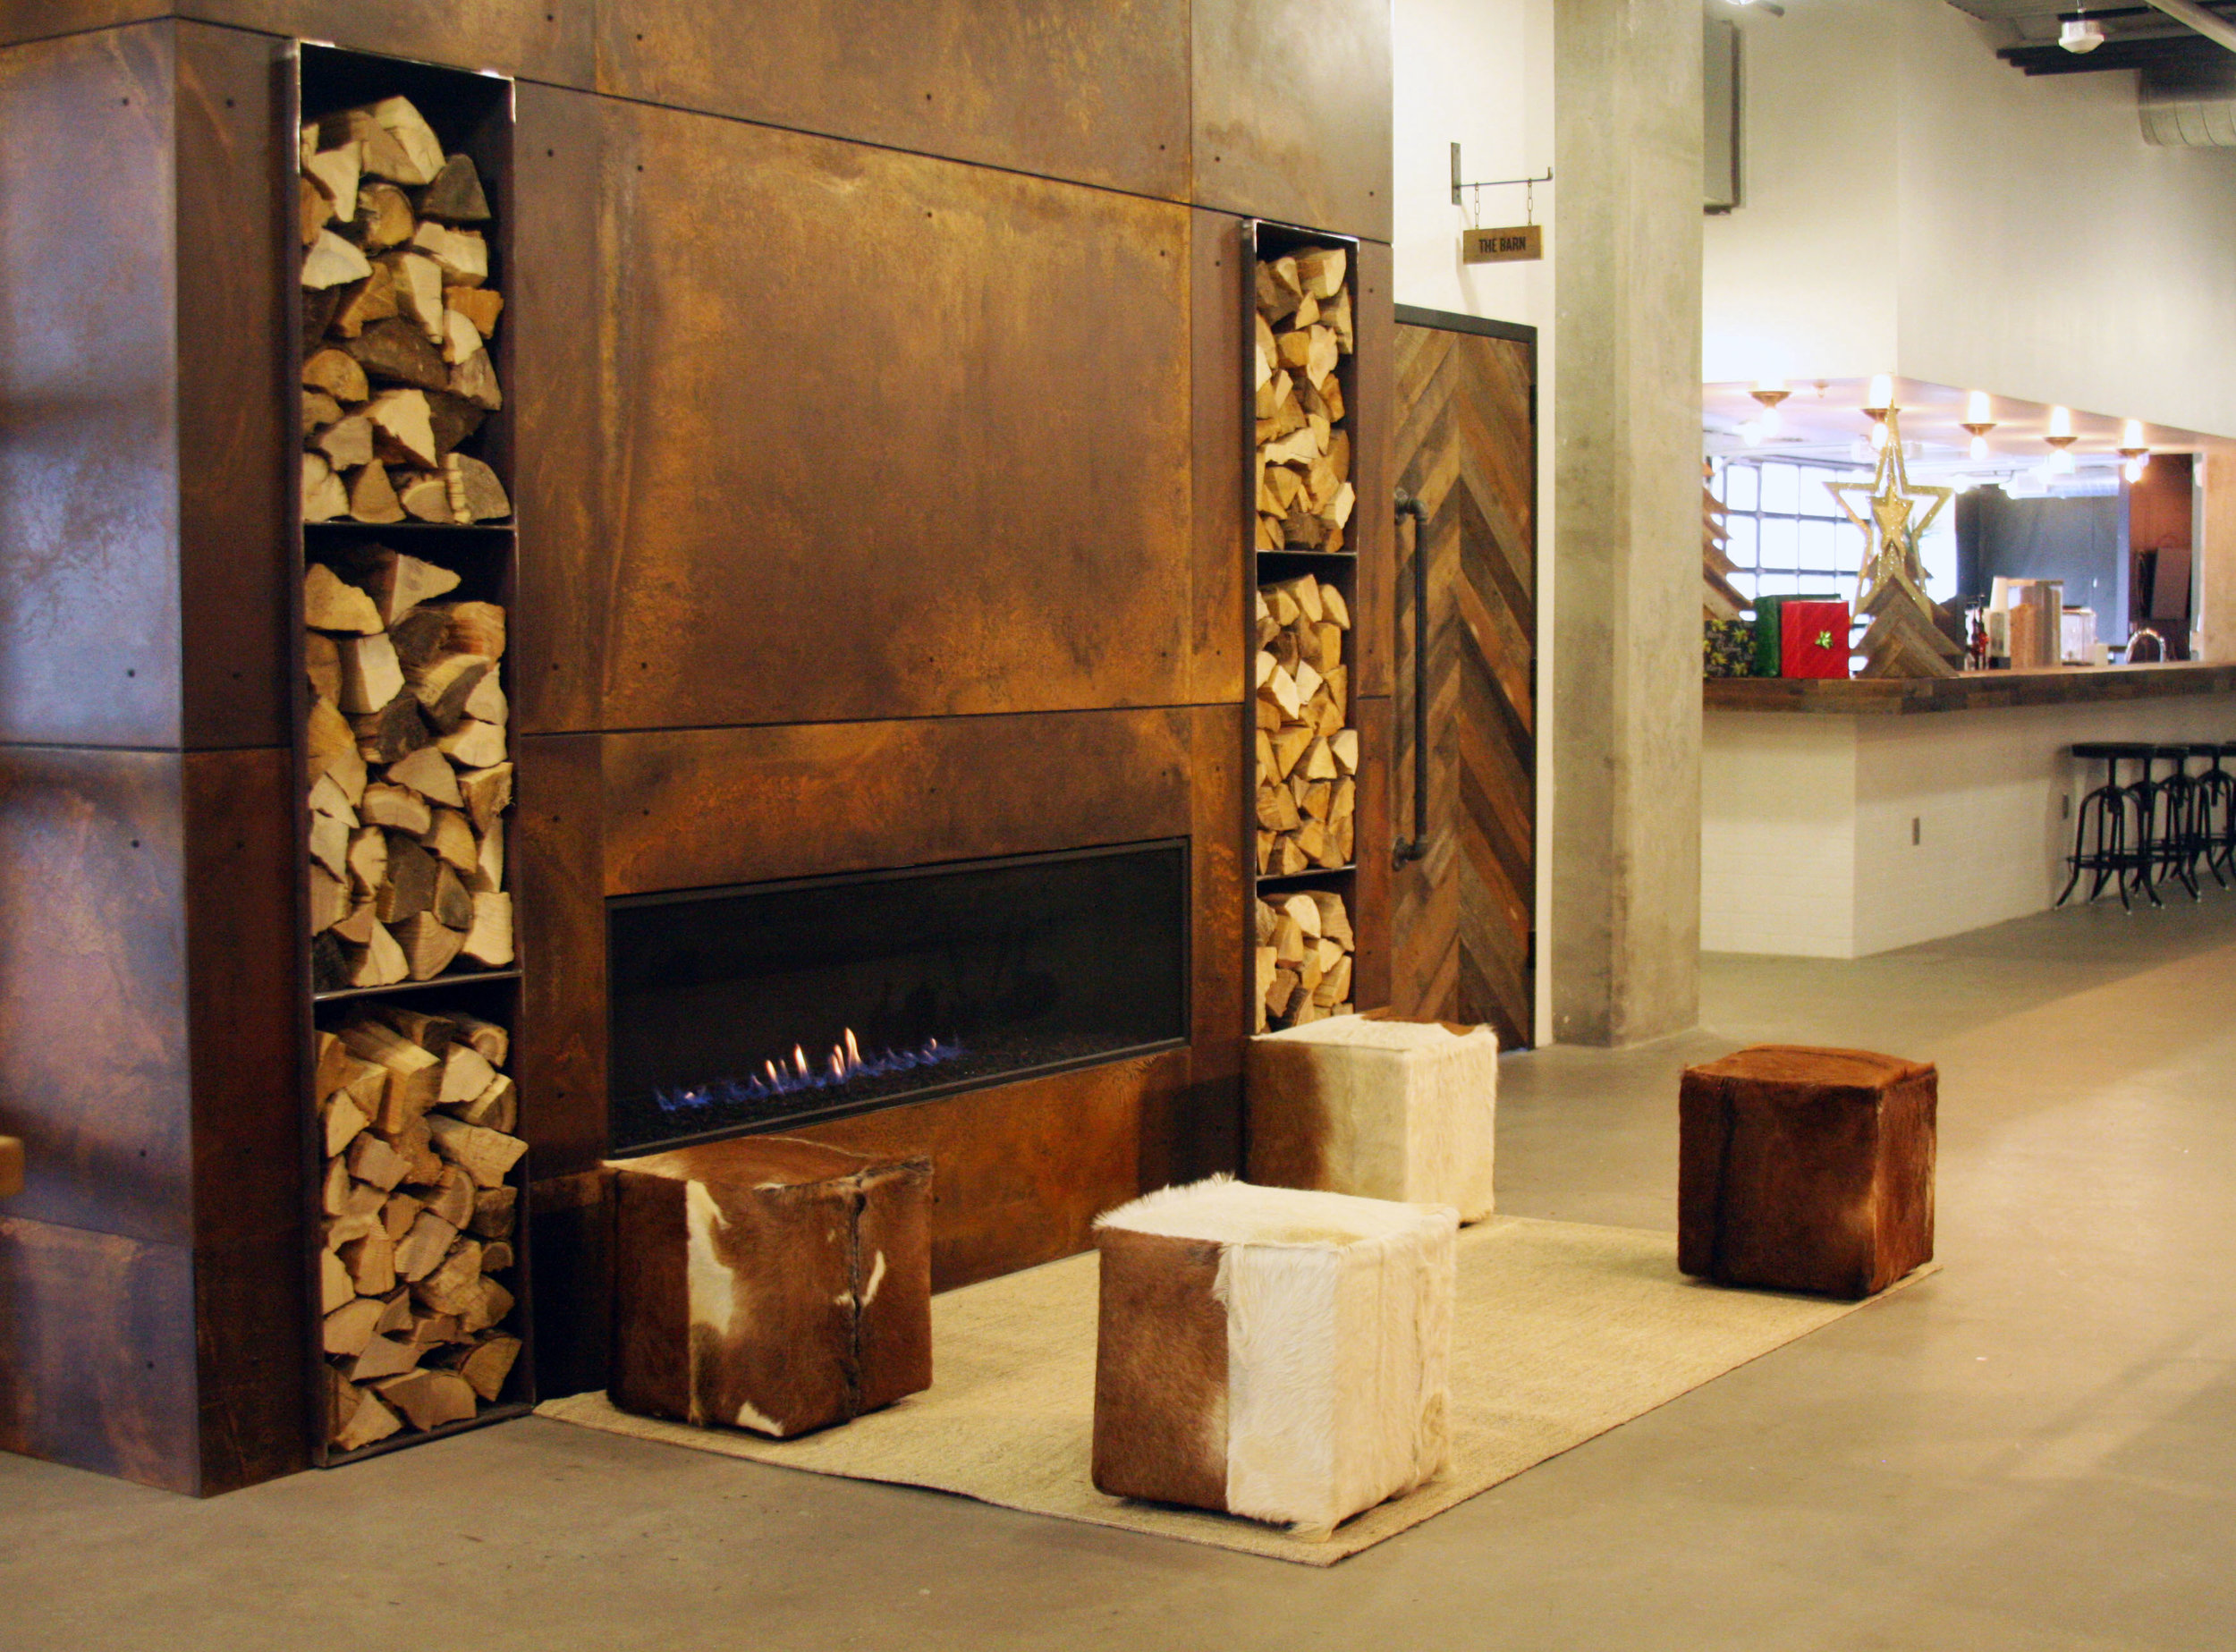 TRAEGER FIREPLACE 3.jpg